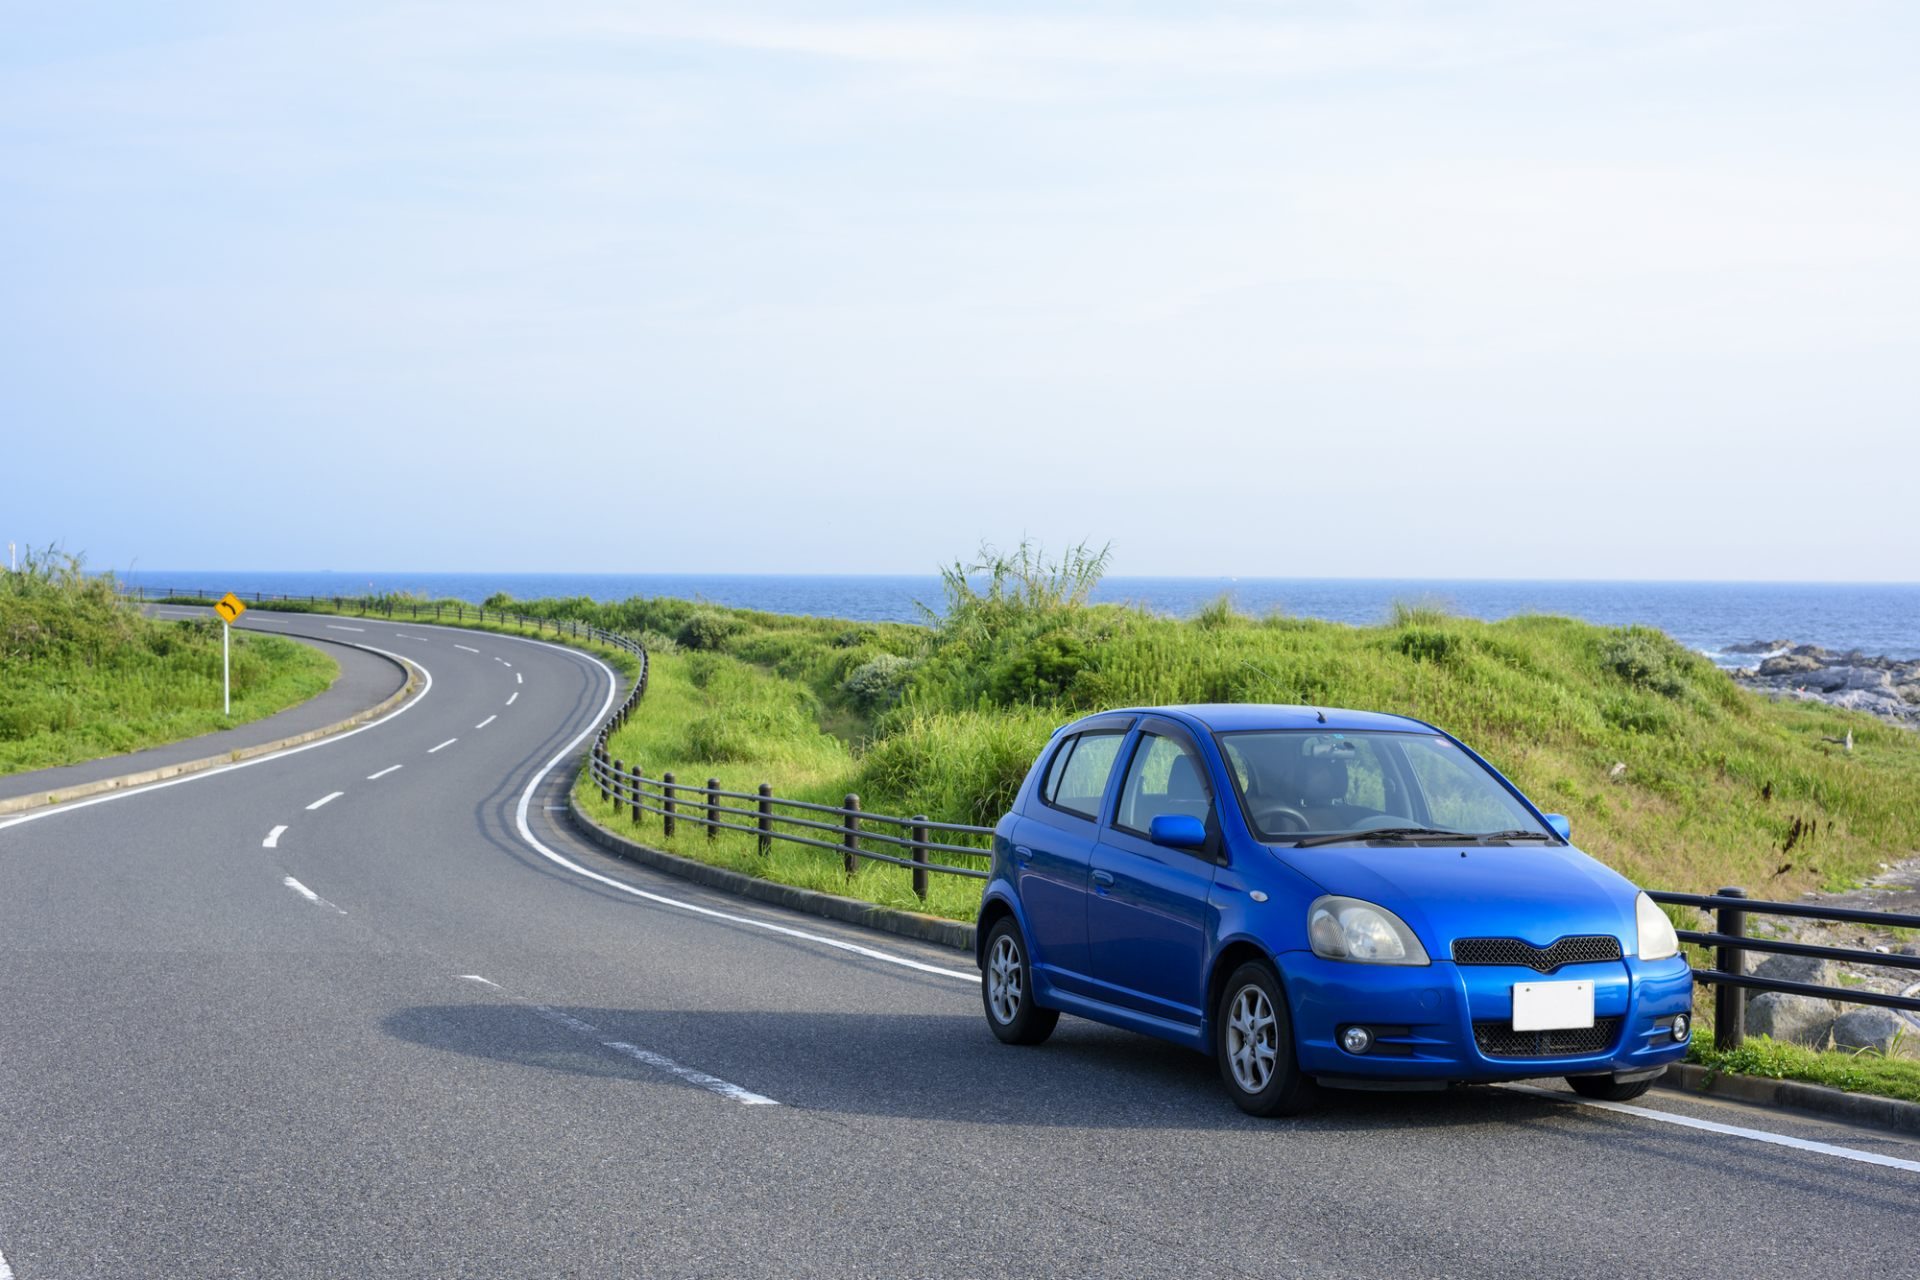 Rental Car Options for the Most Travel Freedom